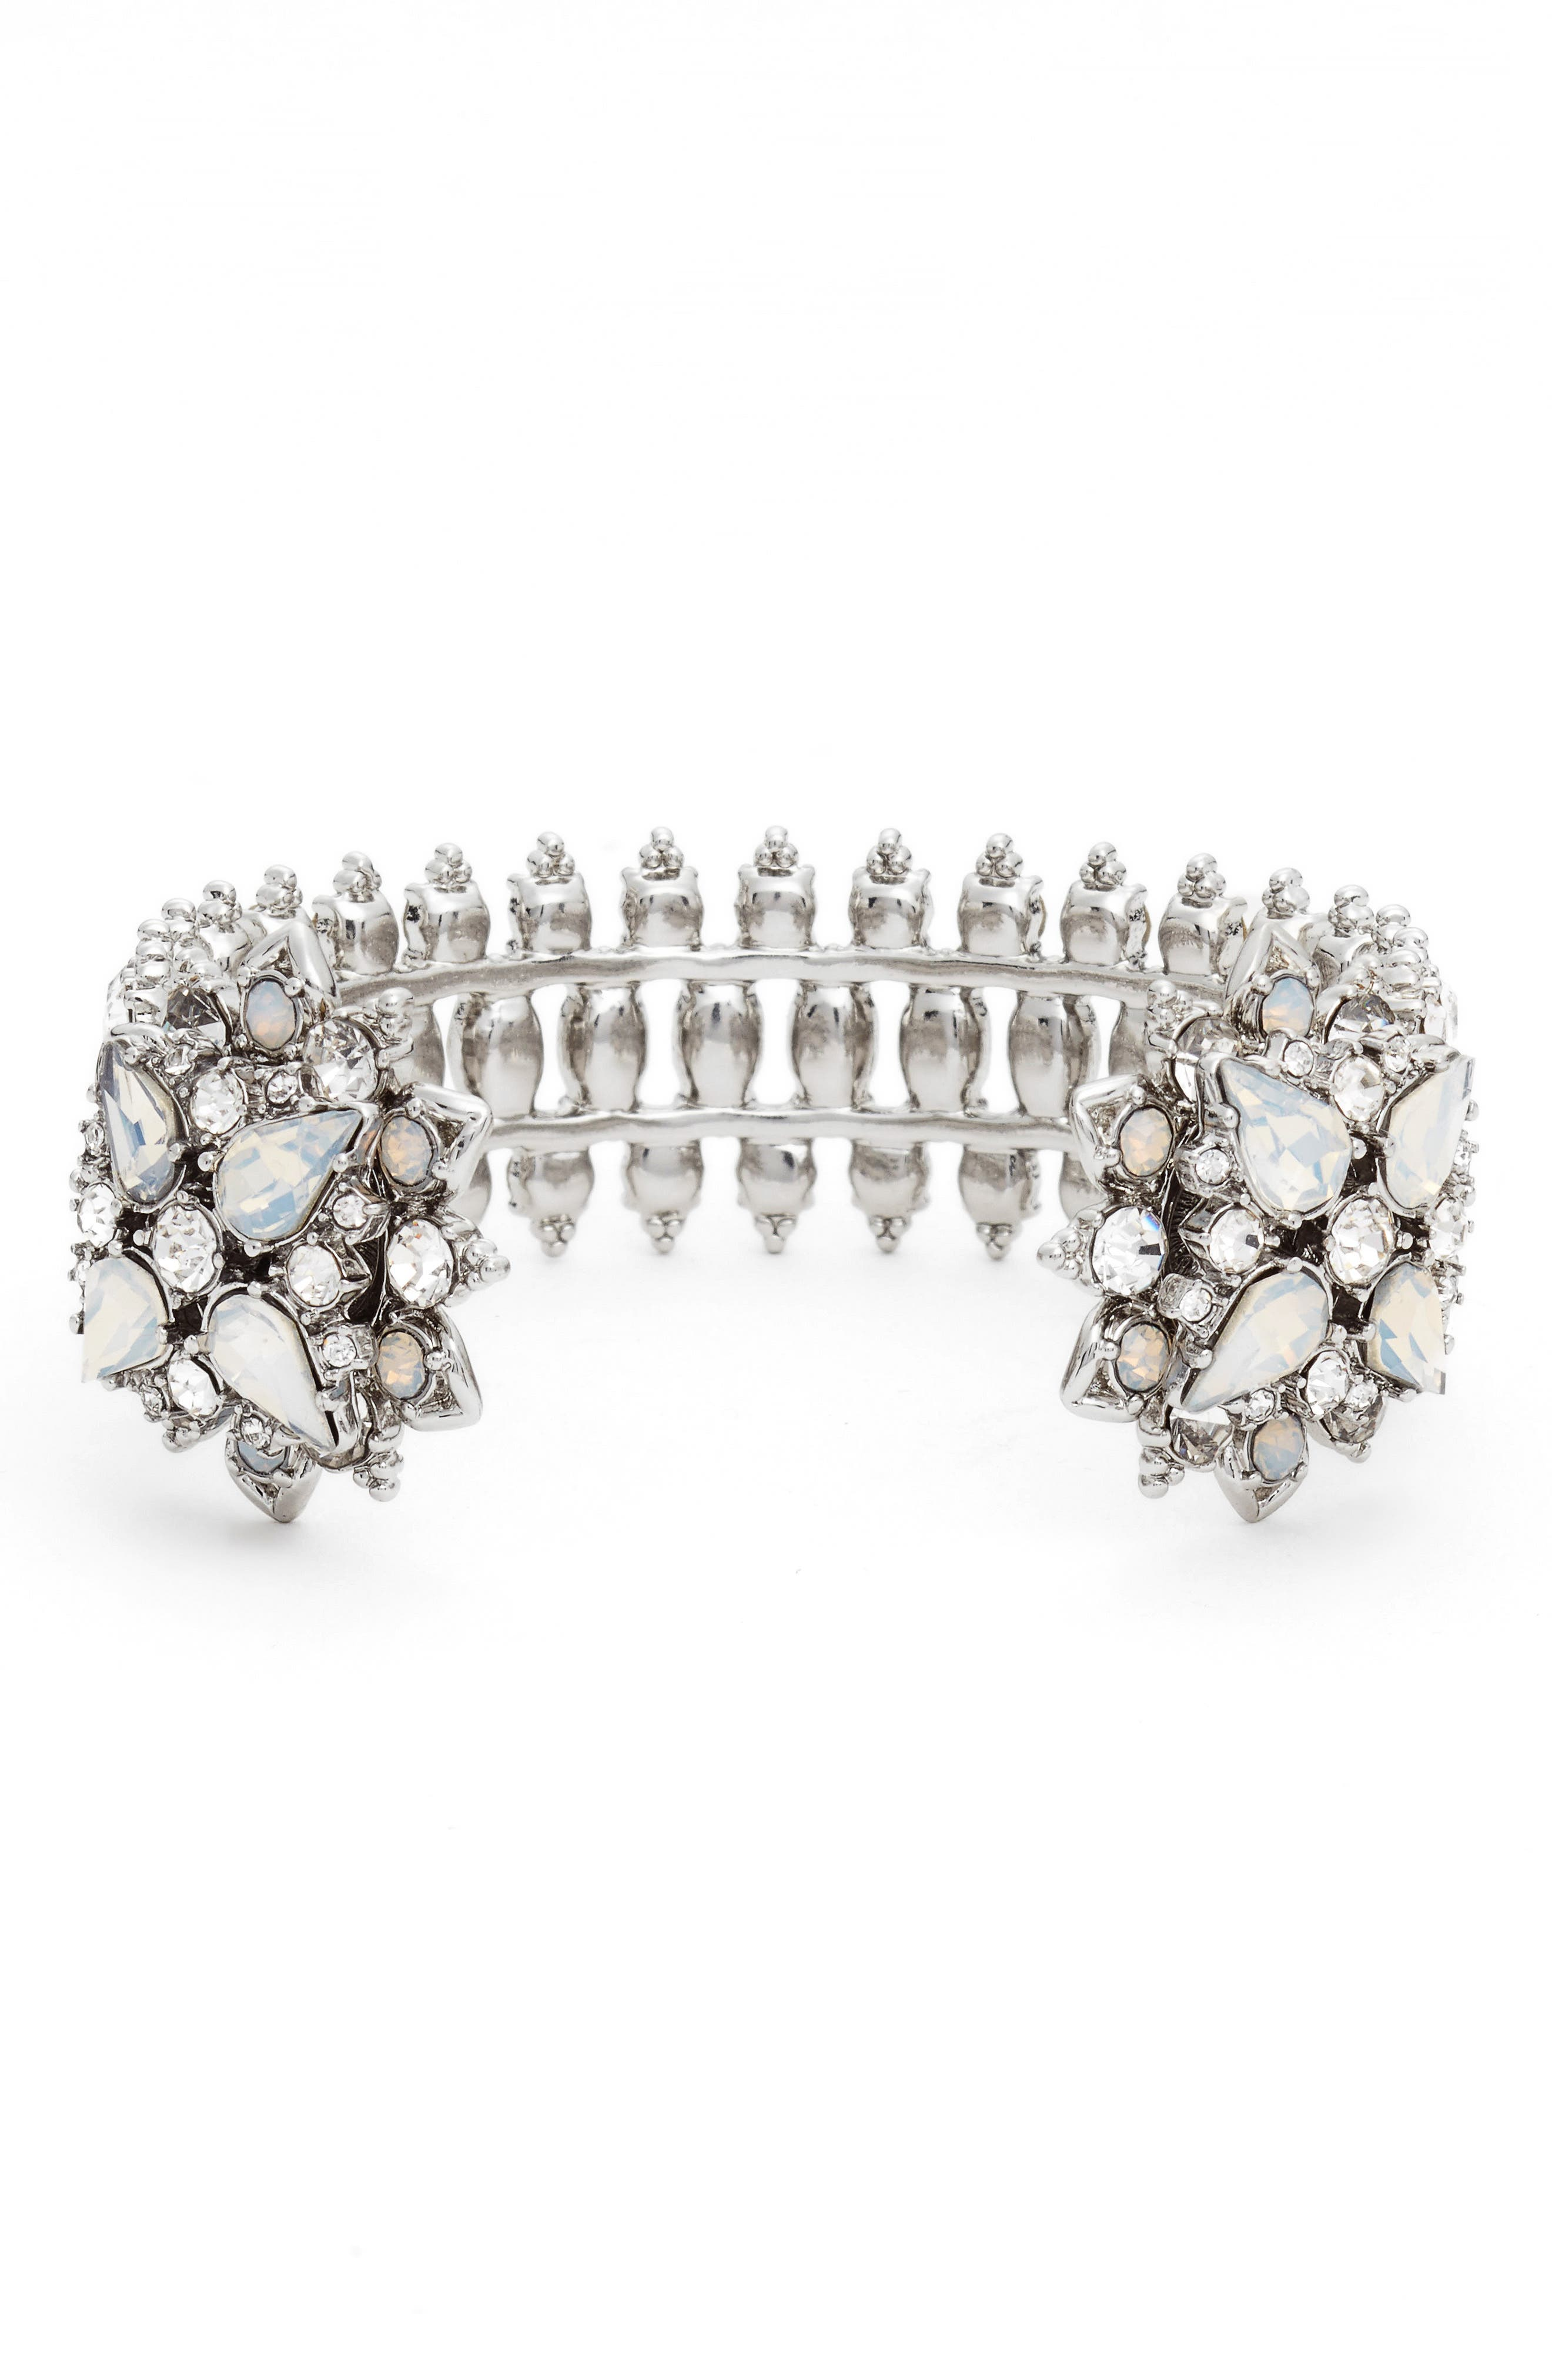 Alternate Image 1 Selected - Marchesa Crystal Wrist Cuff